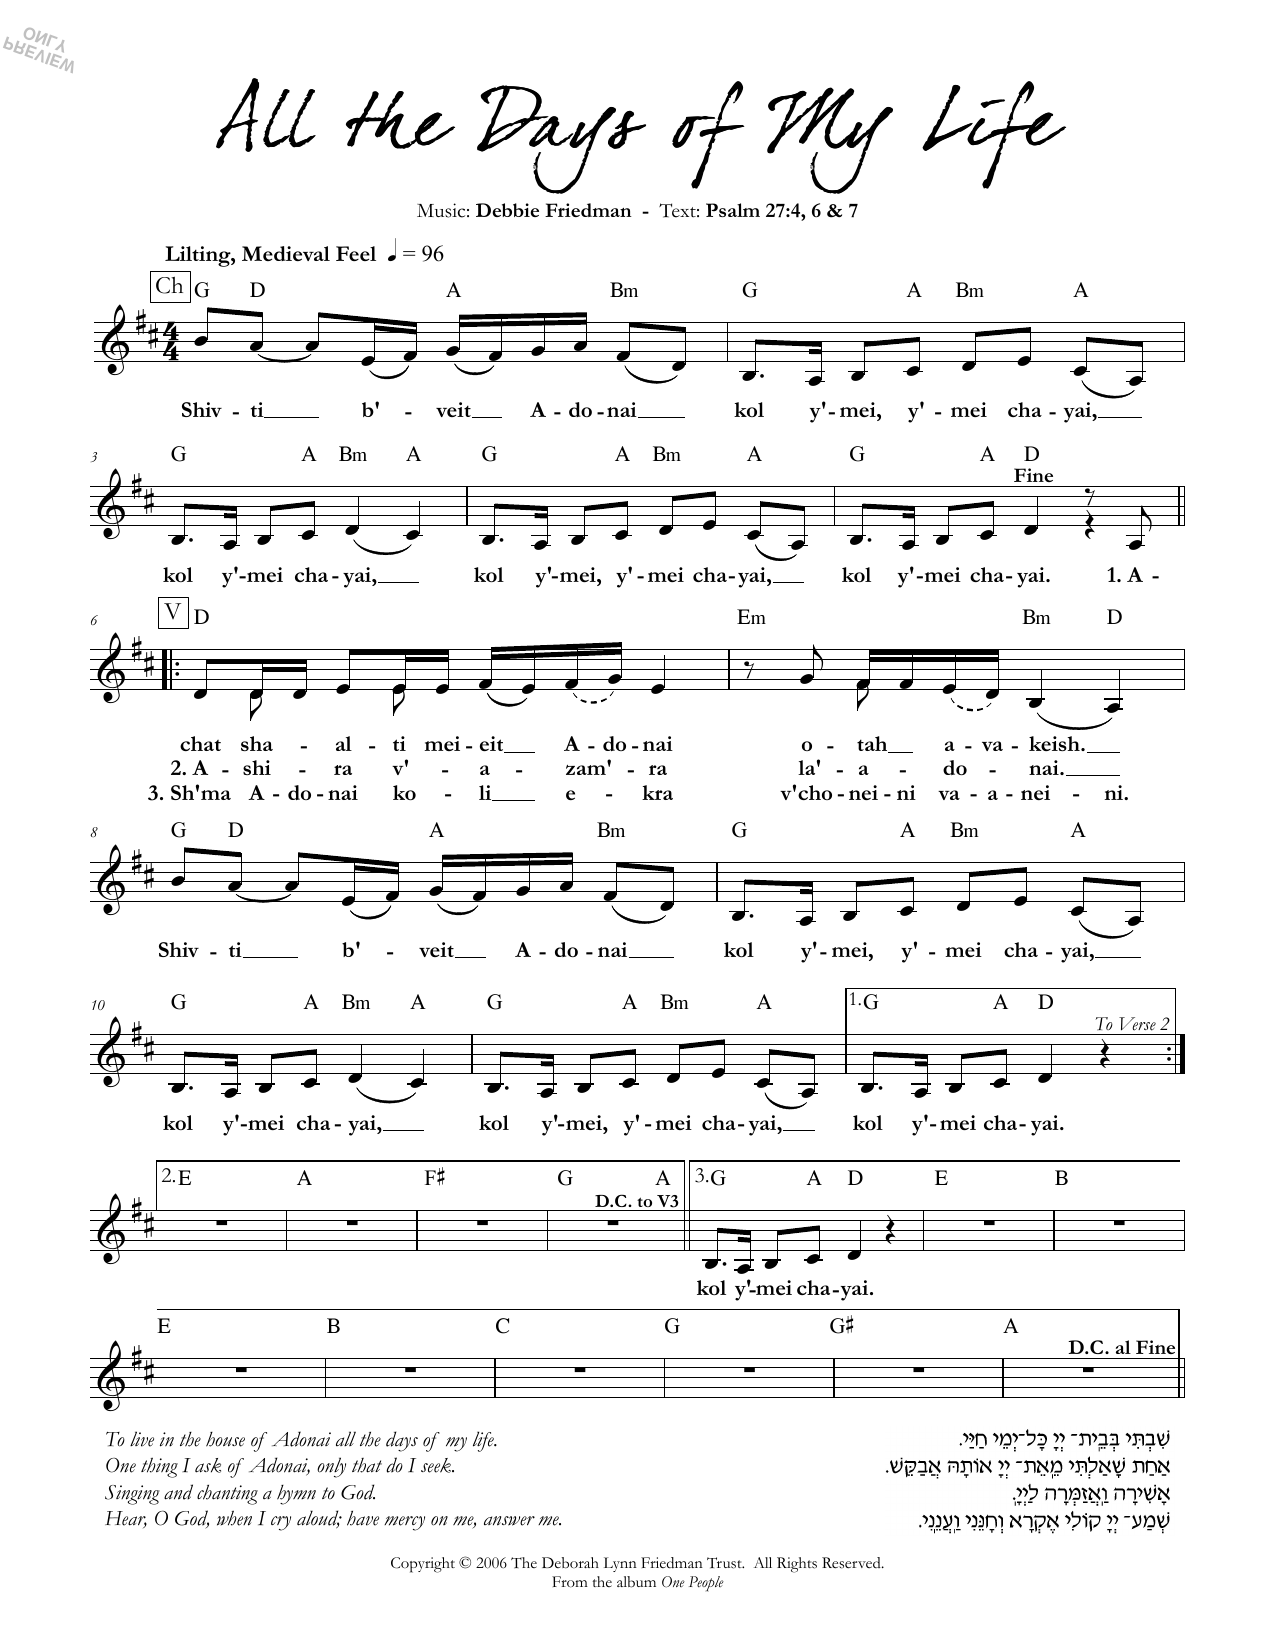 All the Days of My Life Sheet Music